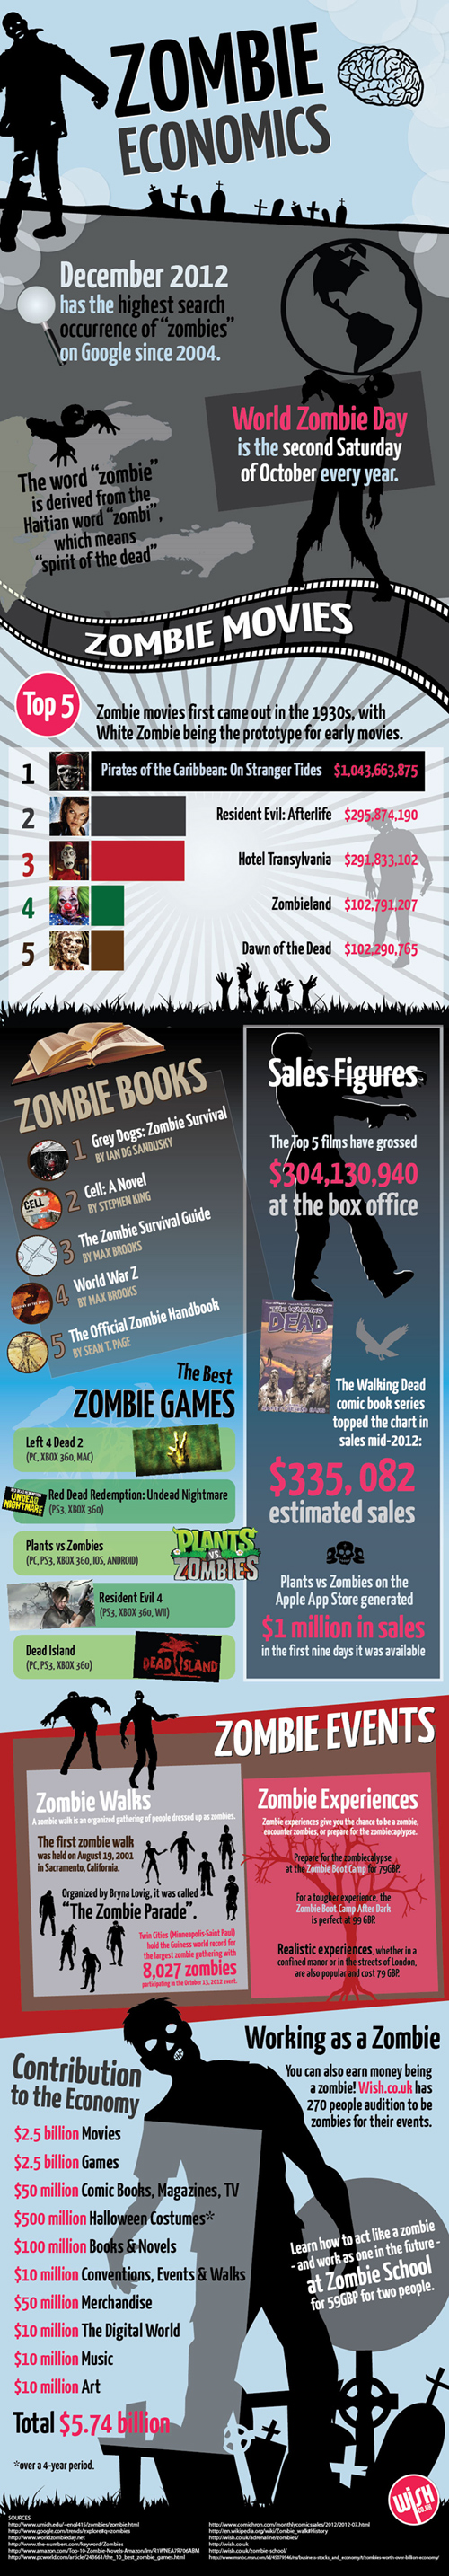 The Zombie Industry-Infographic